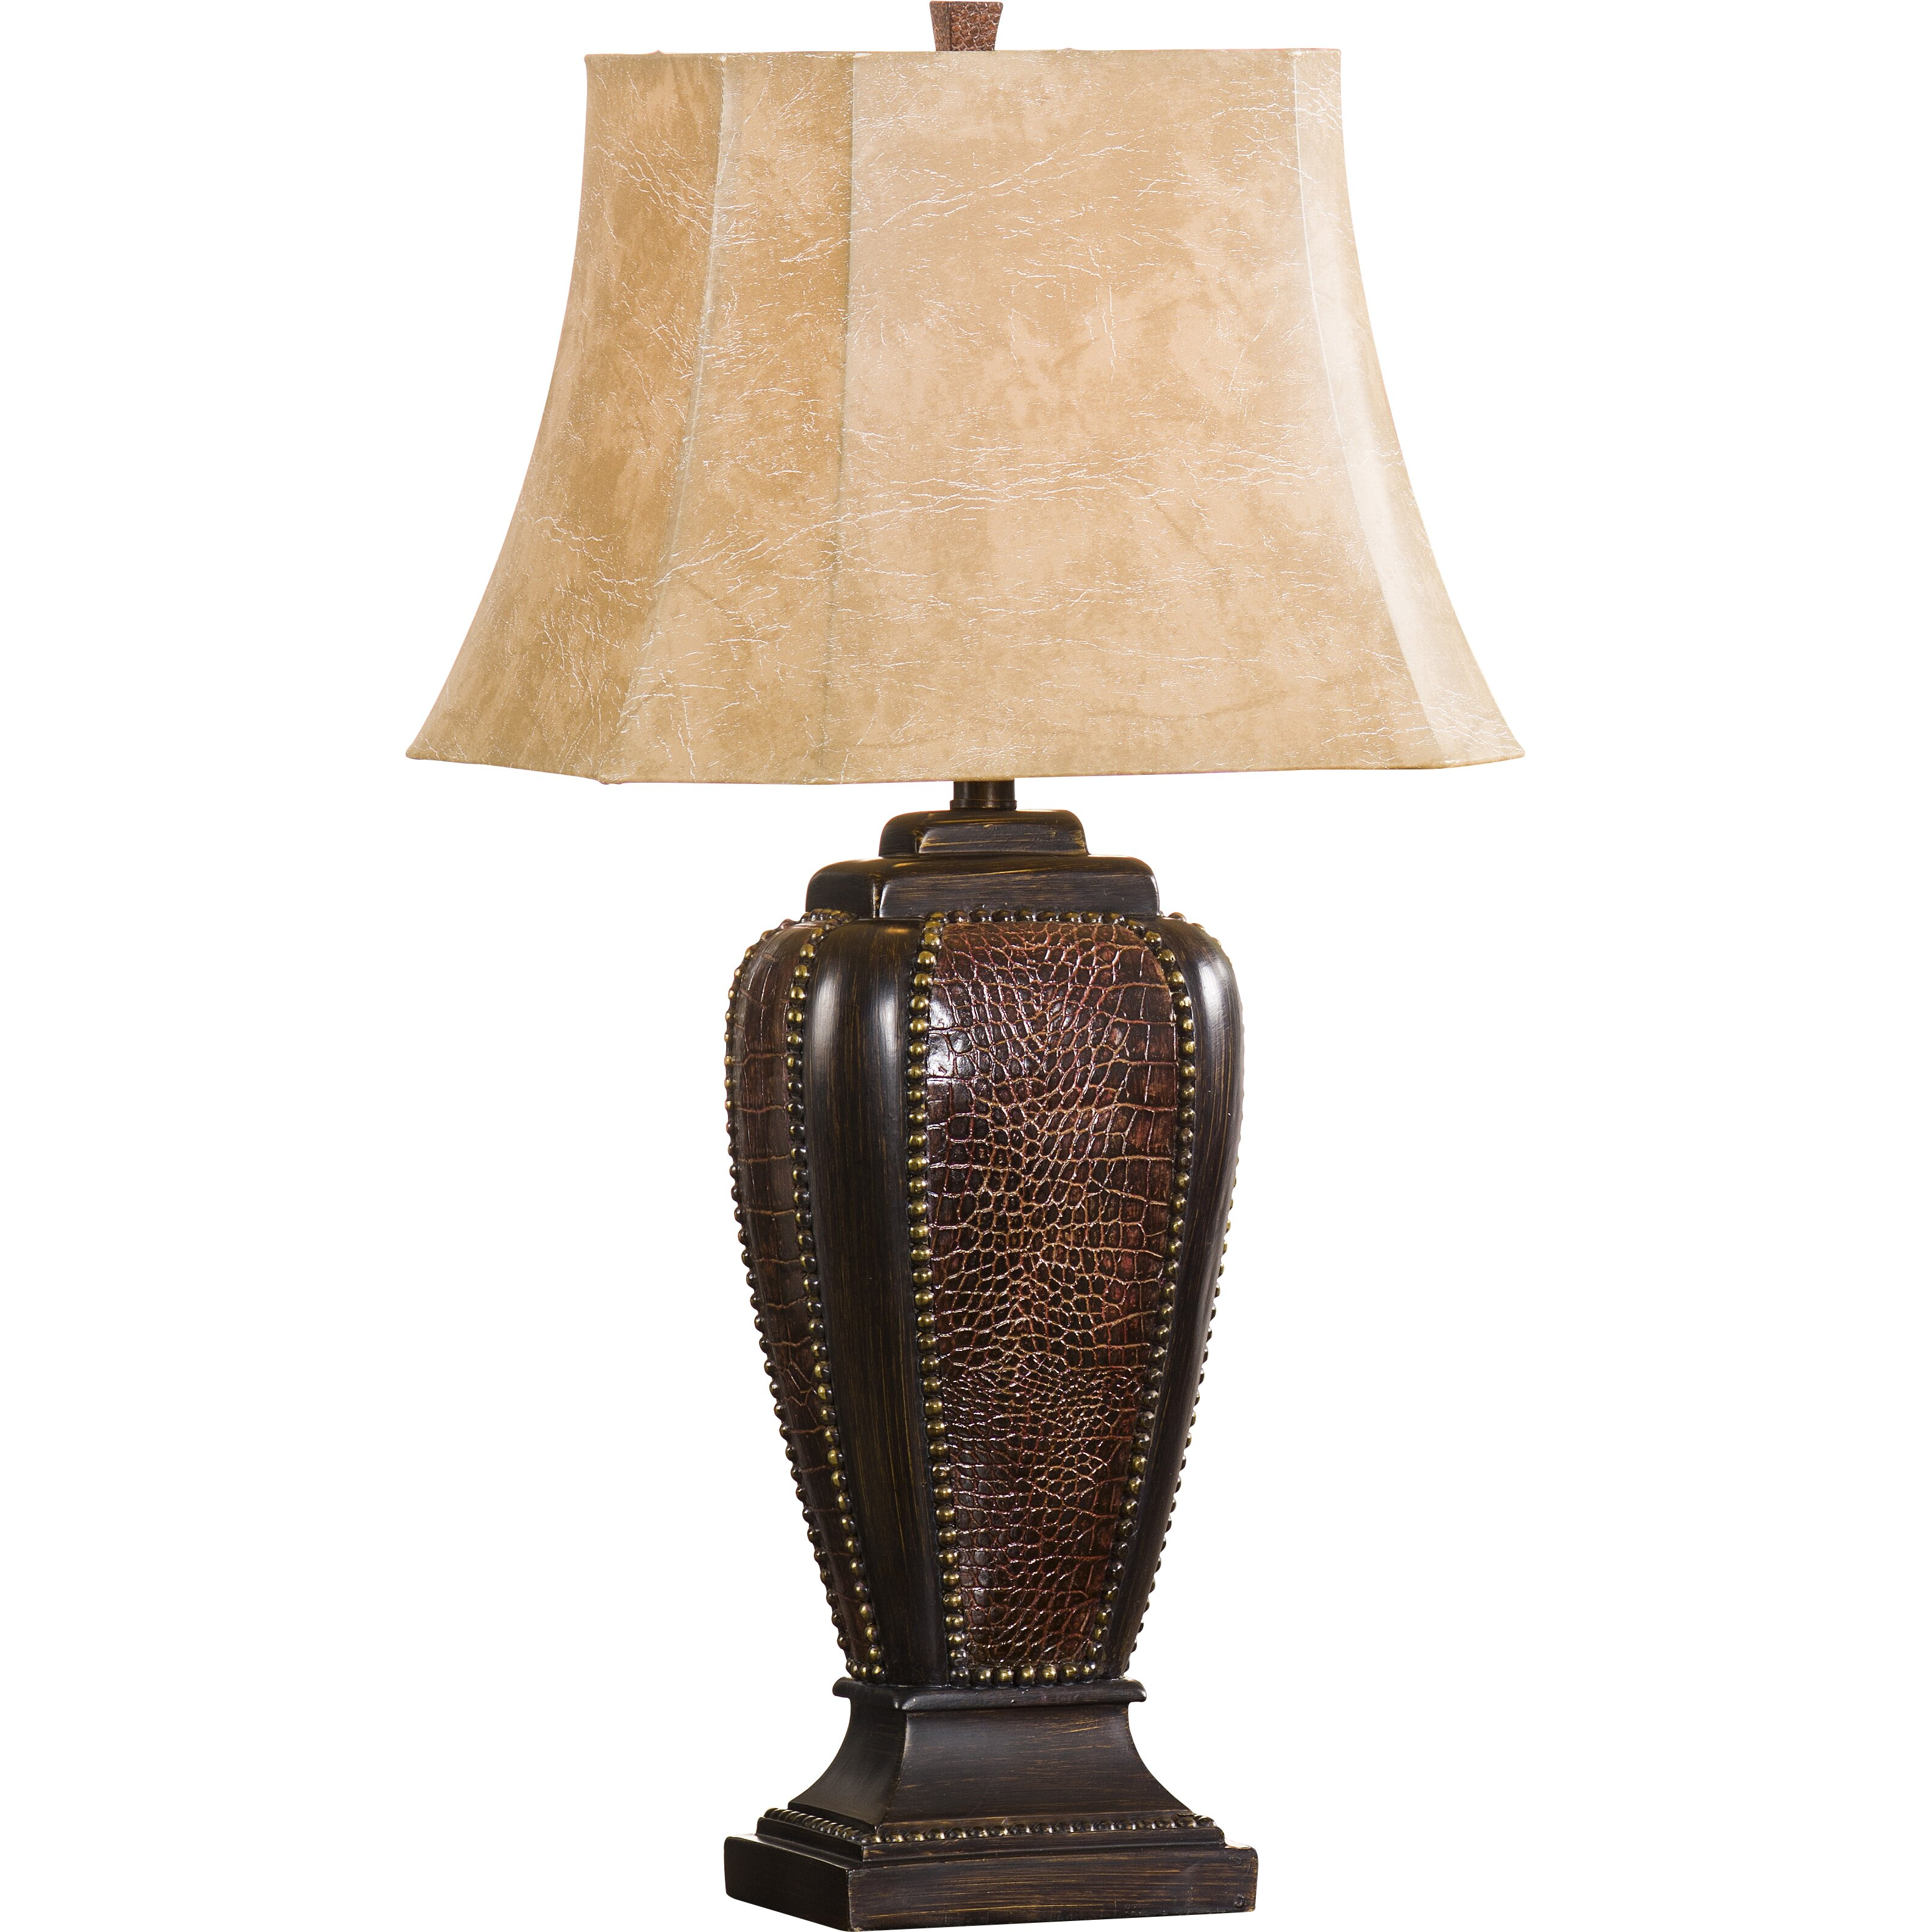 Inroom designs 30 table lamps set of 2 reviews In room designs